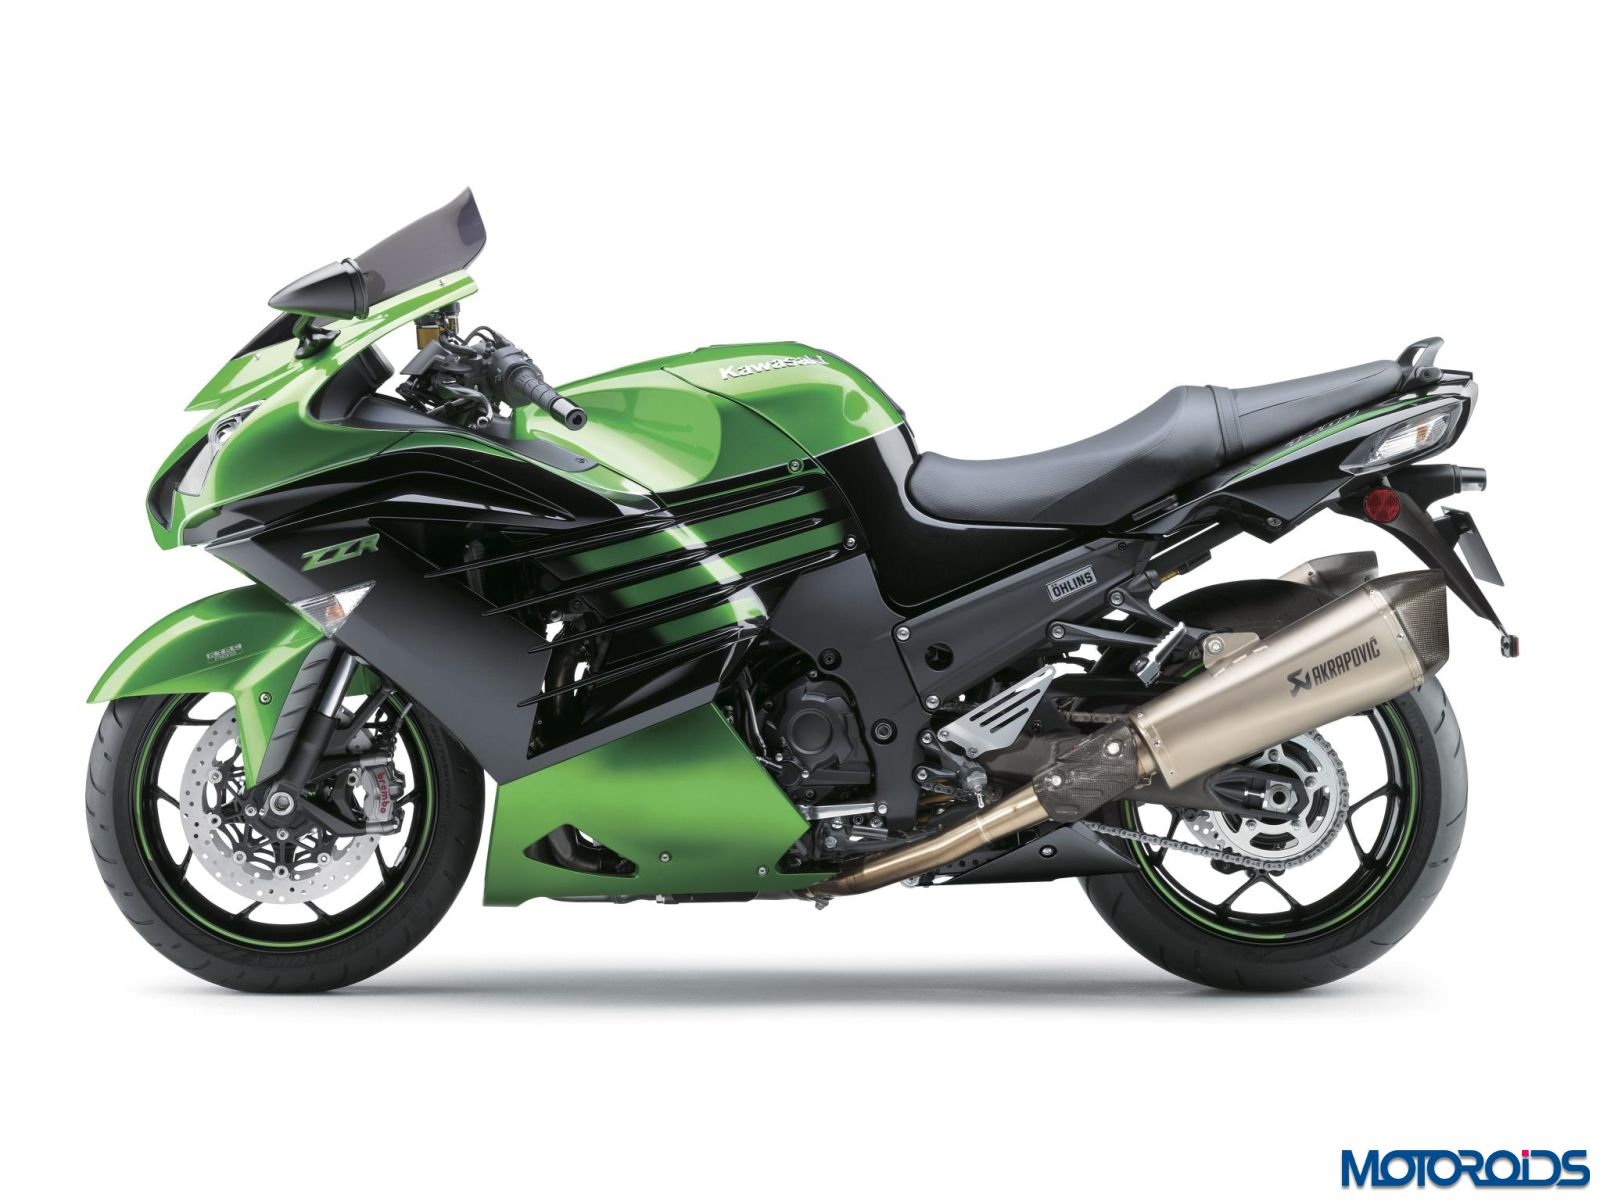 Video Meet The 2016 Kawasaki Ninja Zx 14r Performance Sport moreover Zx10r 2016 Mgp Exhaust together with Kawasaki Ninja Zx 14 2010 moreover Z800 Zr800a Z800e 13 14 15 16 Exhaust Link Pipe And 350mm Round Gp Style Stainless Steel Silencer 20575 P likewise 2511 Zx10 Shock Conversion 4. on kawasaki zx 14 modifications